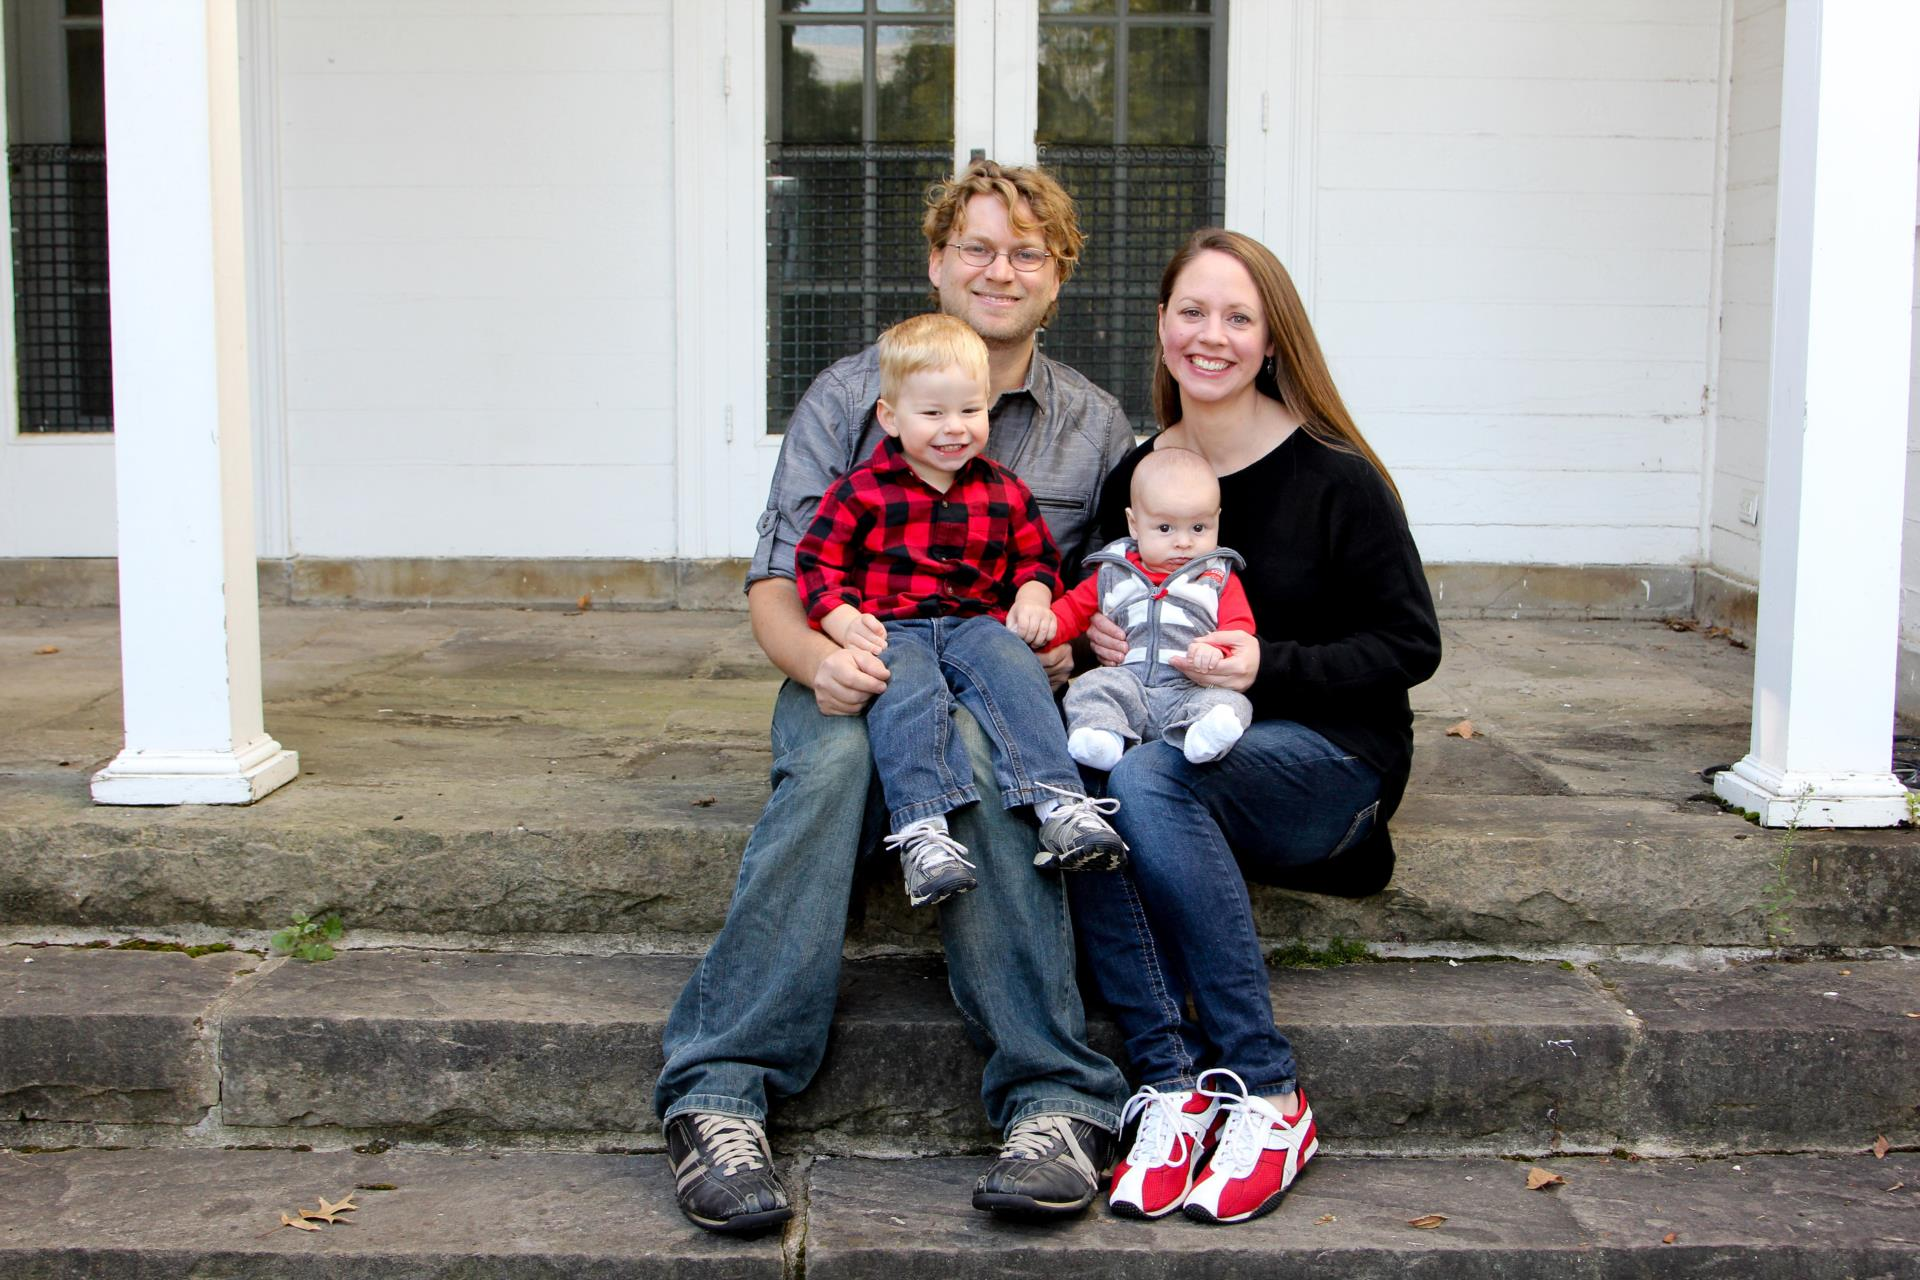 Mrs. Marks and her family